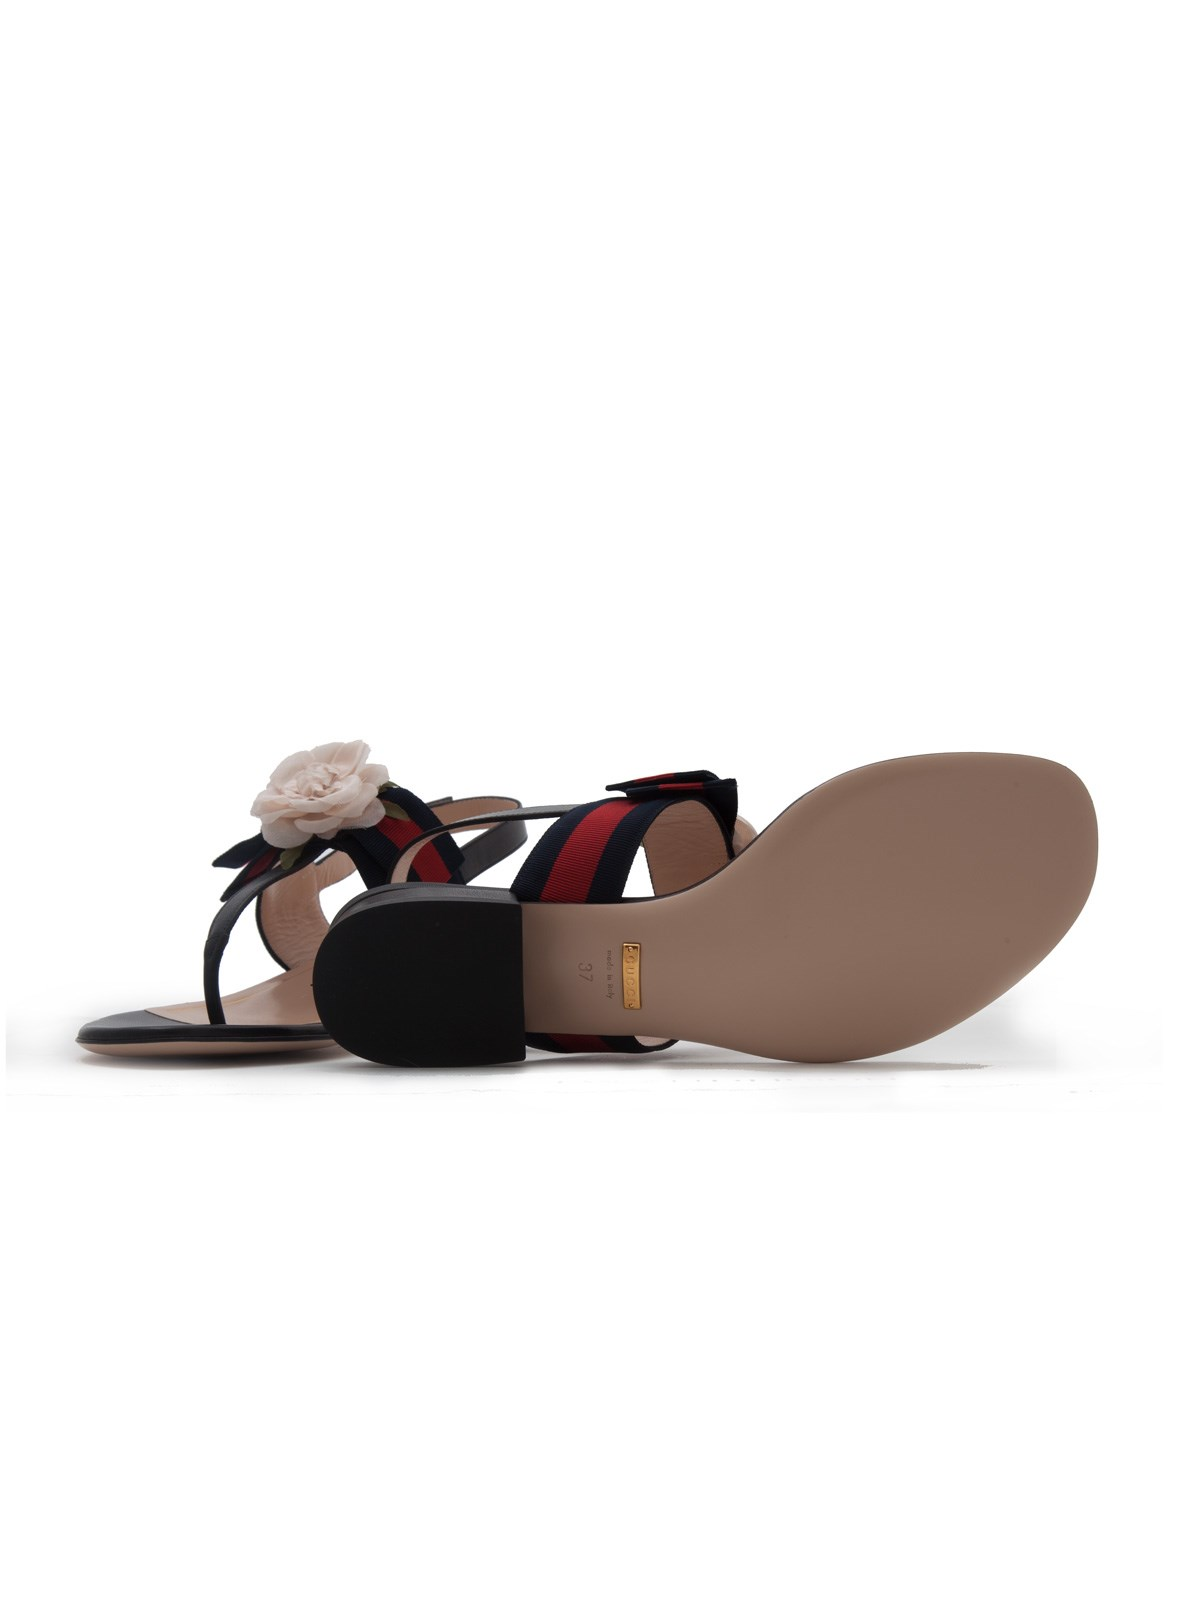 6fceda6af751 gucci WEB DETAIL SANDALS WITH FLOWER available on montiboutique.com ...